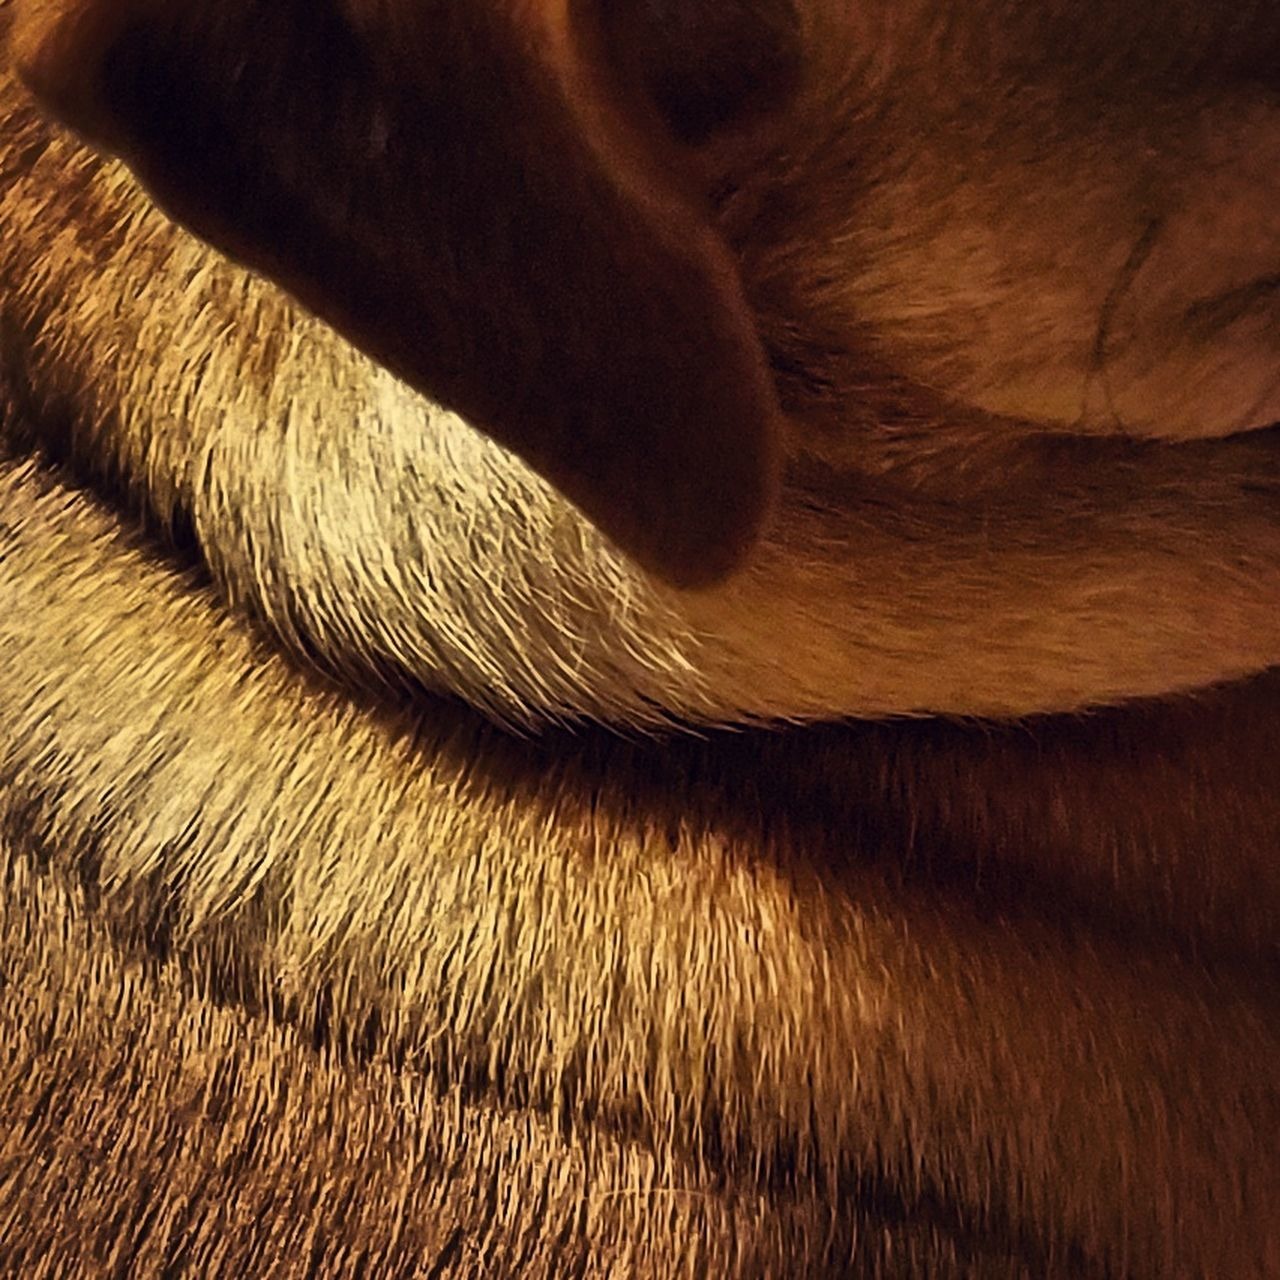 Ruby's Wrinkles Ruby Wrinkles Fur Dog Puppy Neck Animal Textured  Hair Close-up Brown Sunlight Canine Pet Pet Photography  Profile Ear Whiskers Dogear